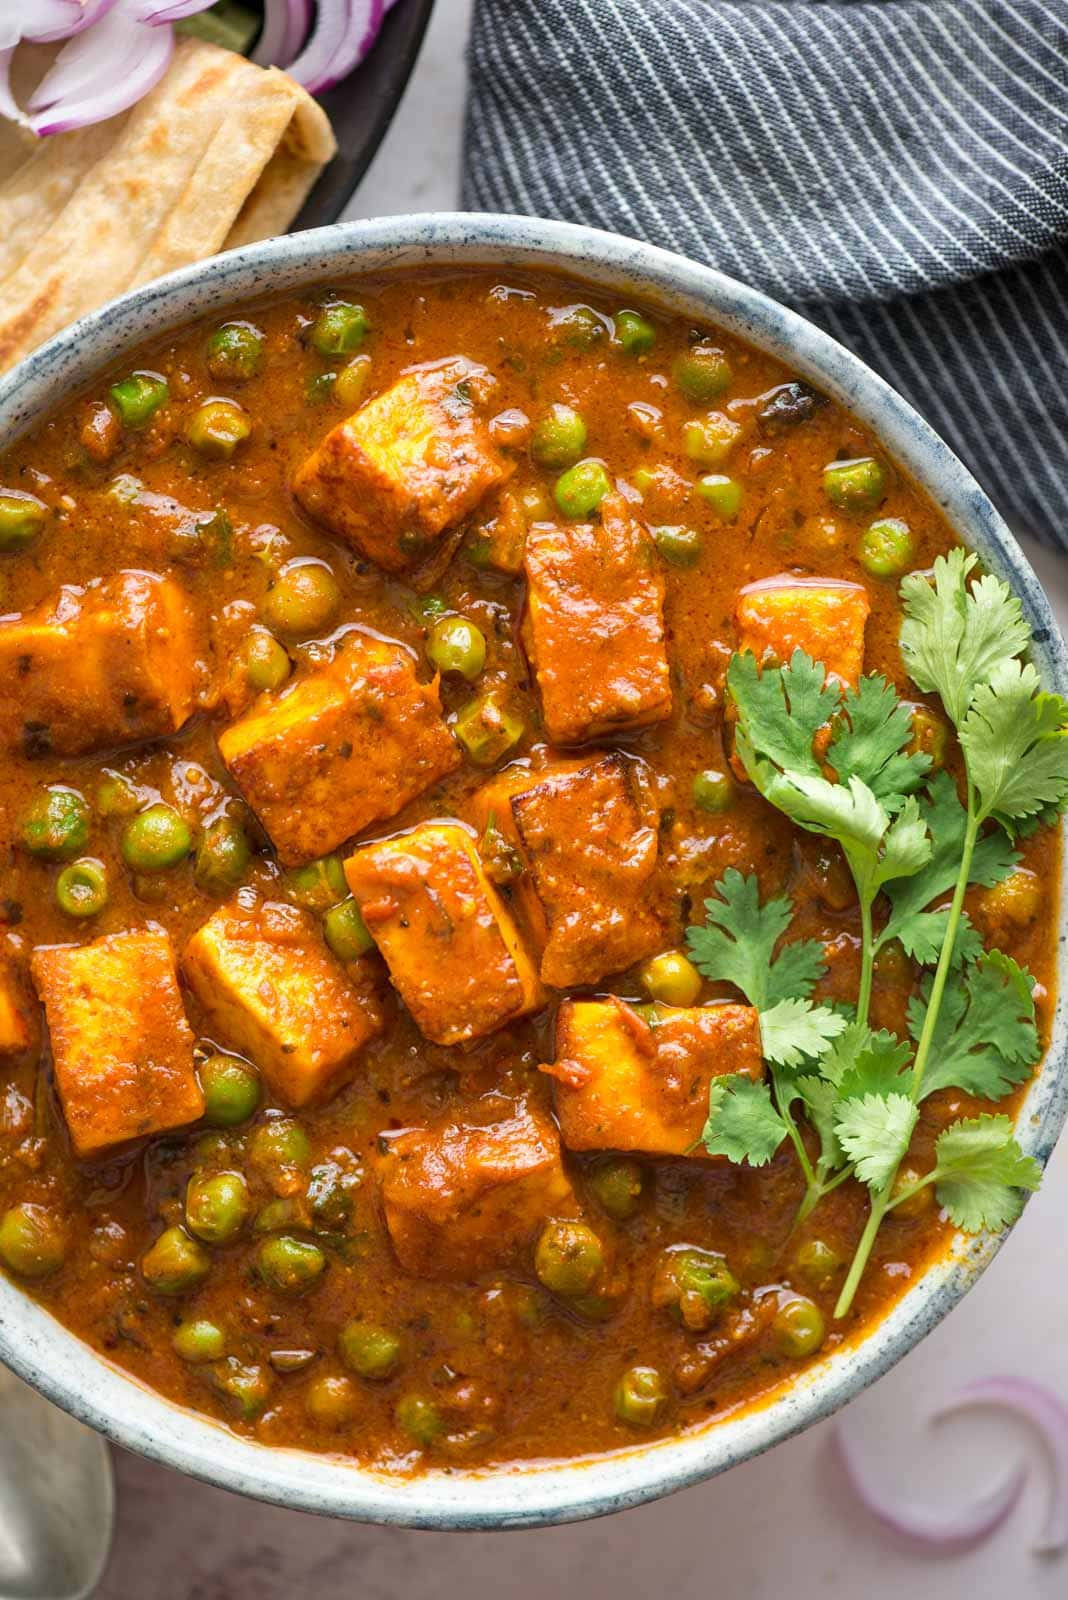 Soft paneer and matar in a flavorful onion tomato gravy, this matar paneer recipe will remind you of your favorite restaurant for sure. Without any cream or cashew, this curry still is thick and perfect to scoop with roti or naan.